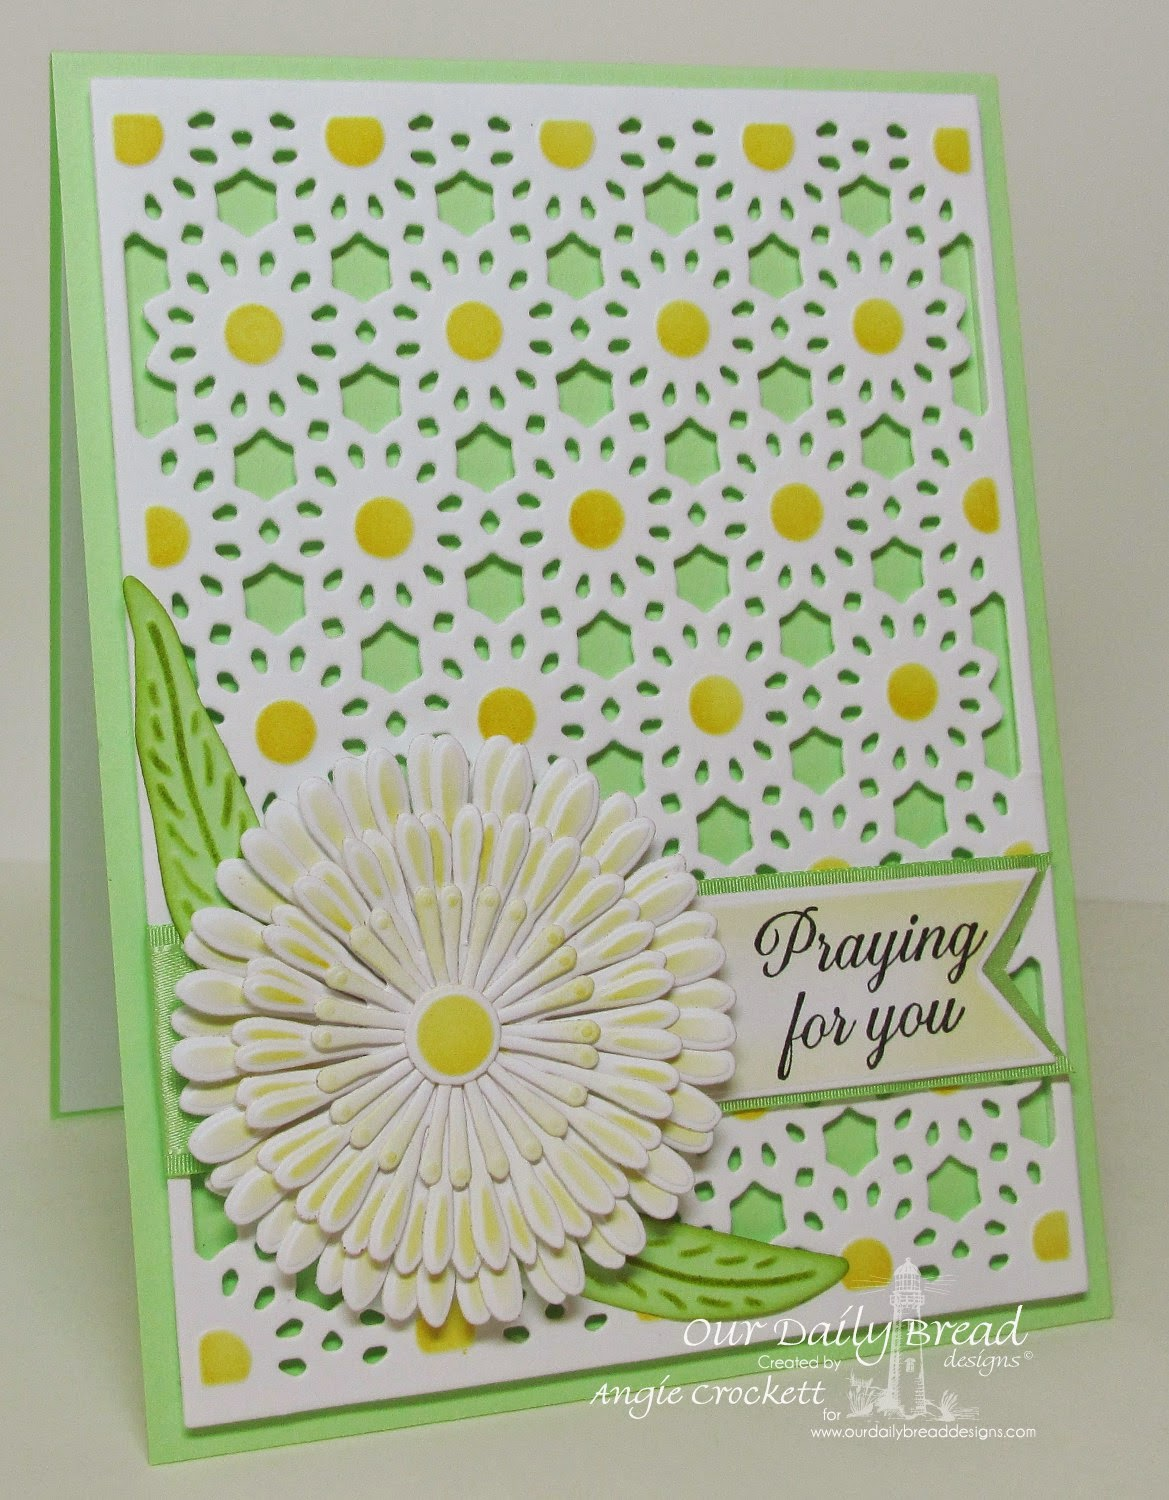 ODBD Pennants Die Set, ODBD Daisy Chain Background Die, ODBD Custom Asters and Leaves Die Set, Ornate Border Sentiments, Card Designer Angie Crockett